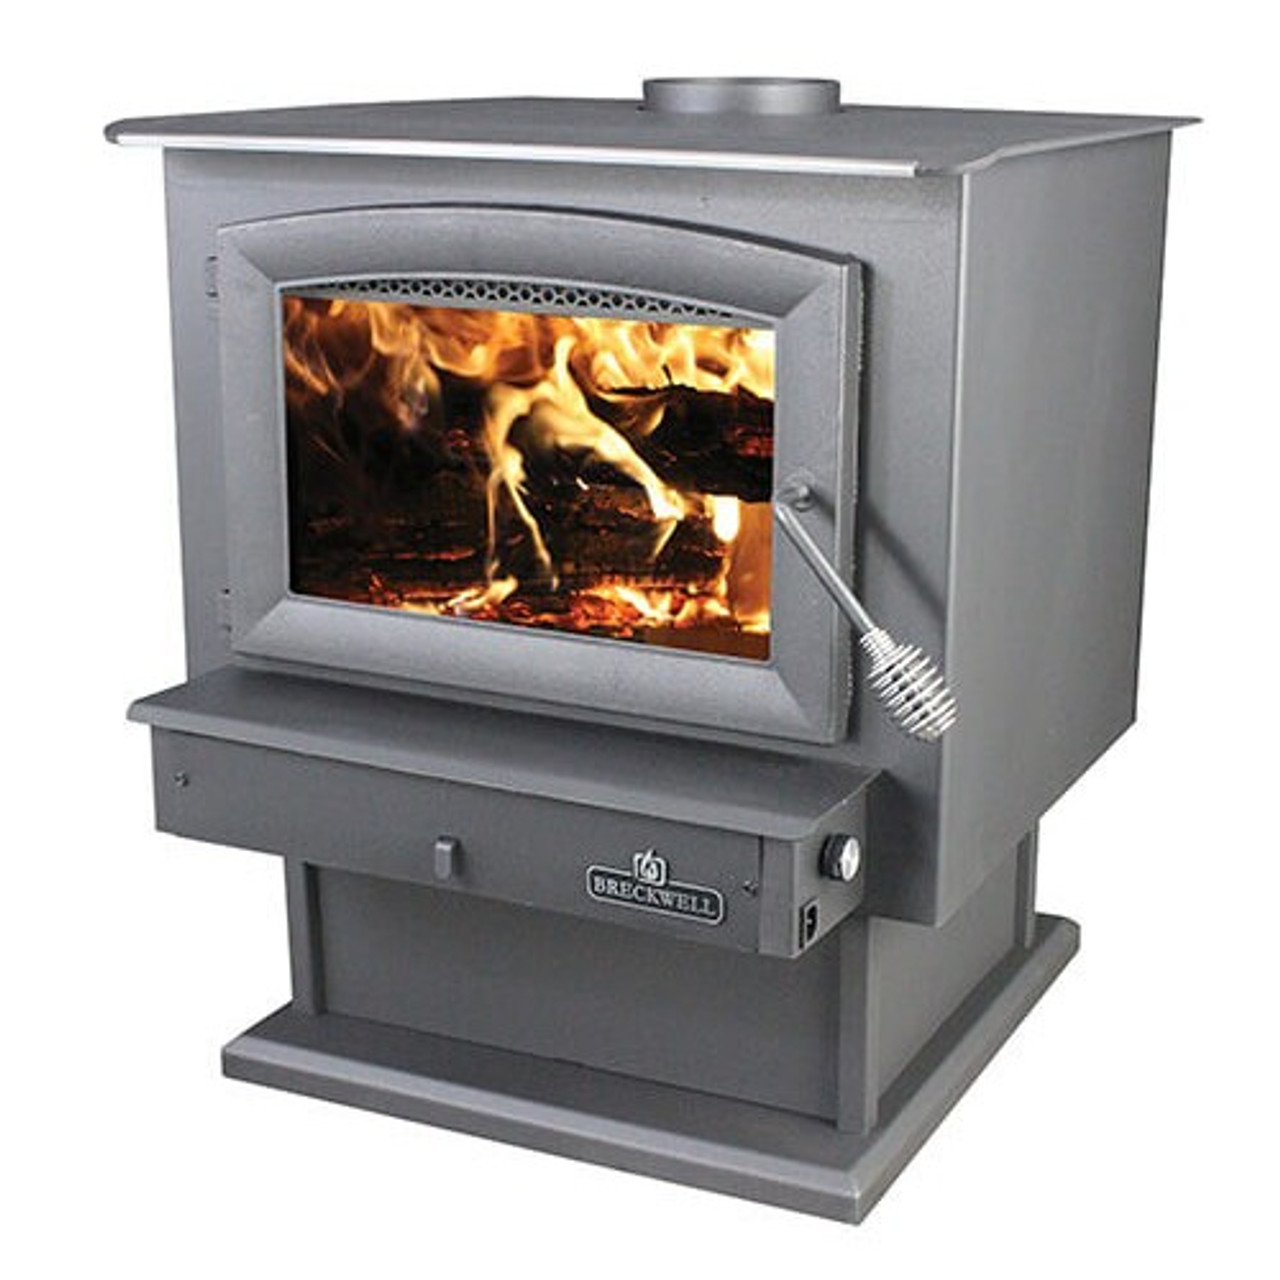 Breckwell SW740 Wood Stove/Insert